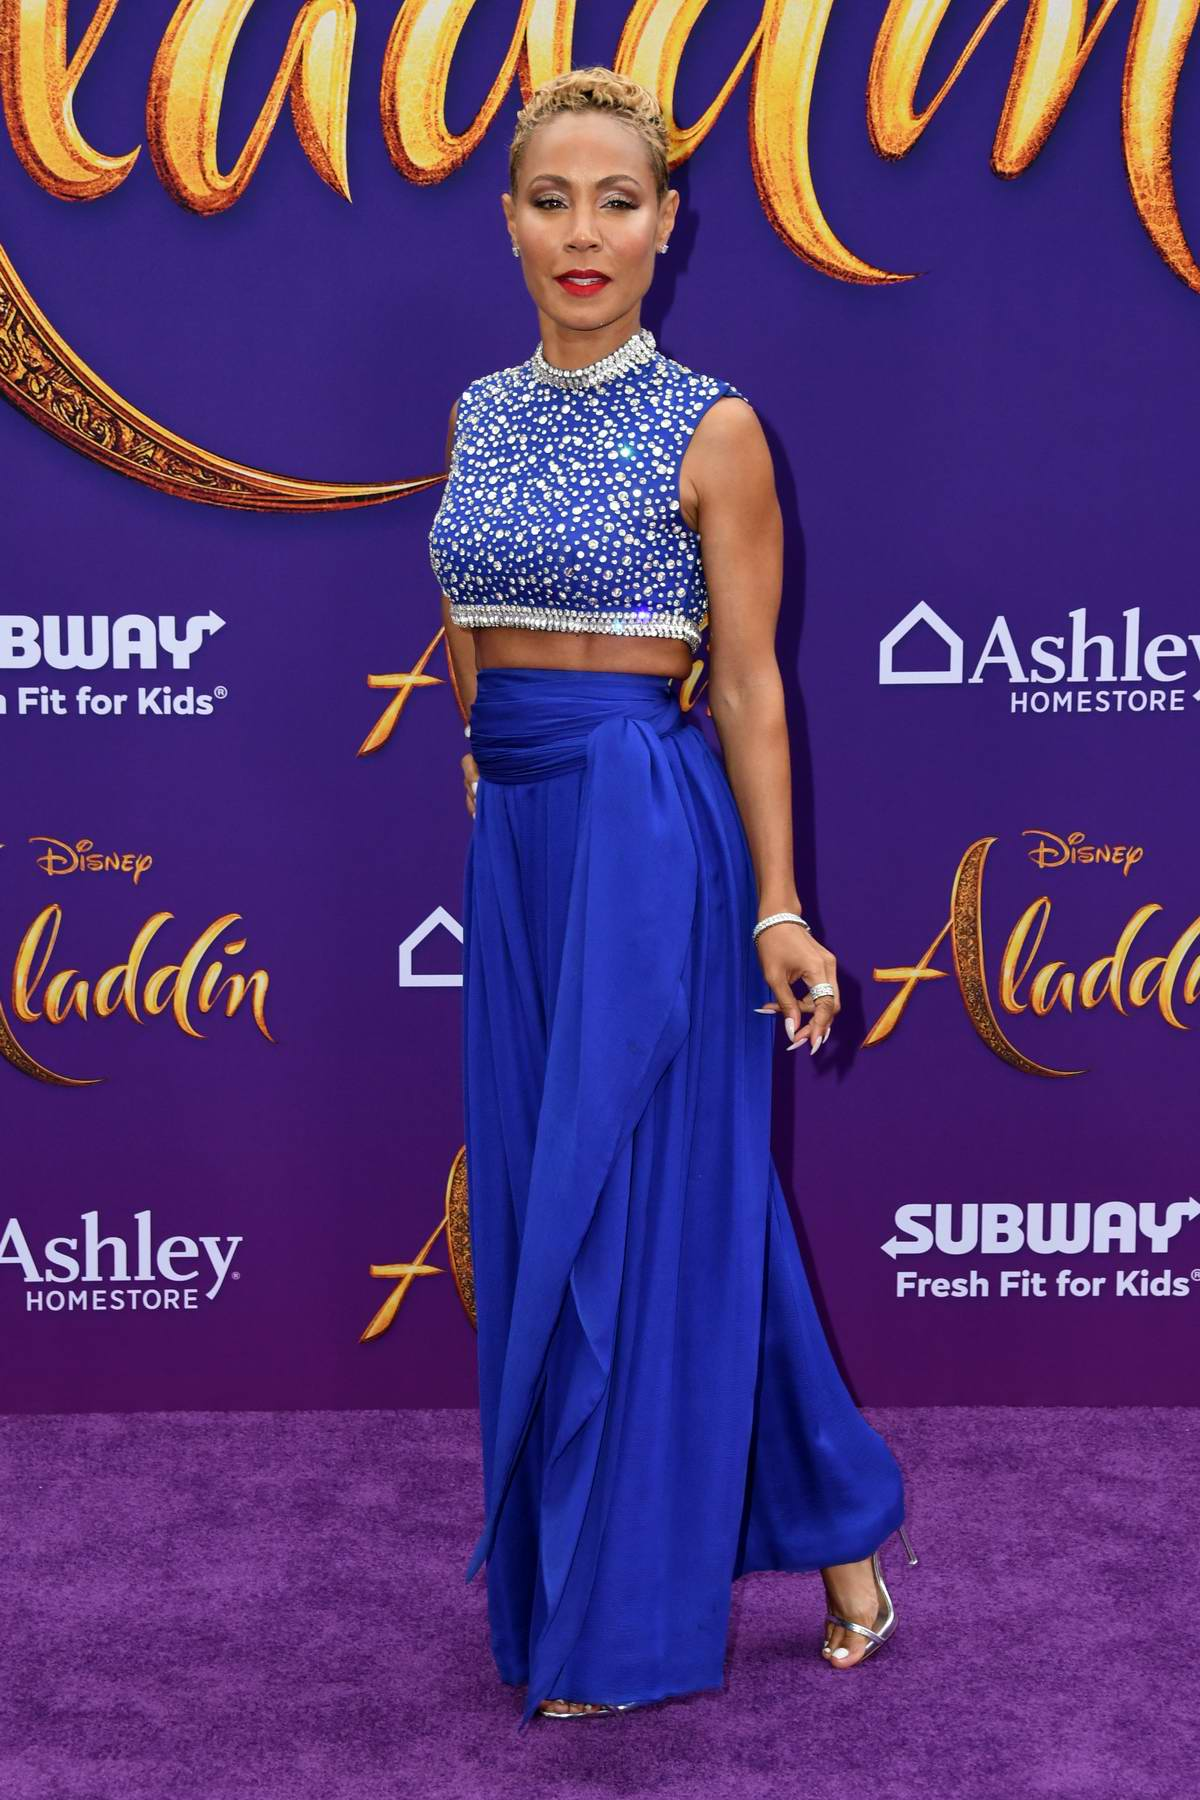 Jada Pinkett Smith attends the World Premiere of Disney's 'Aladdin' at the El Capitan Theater in Hollywood, California